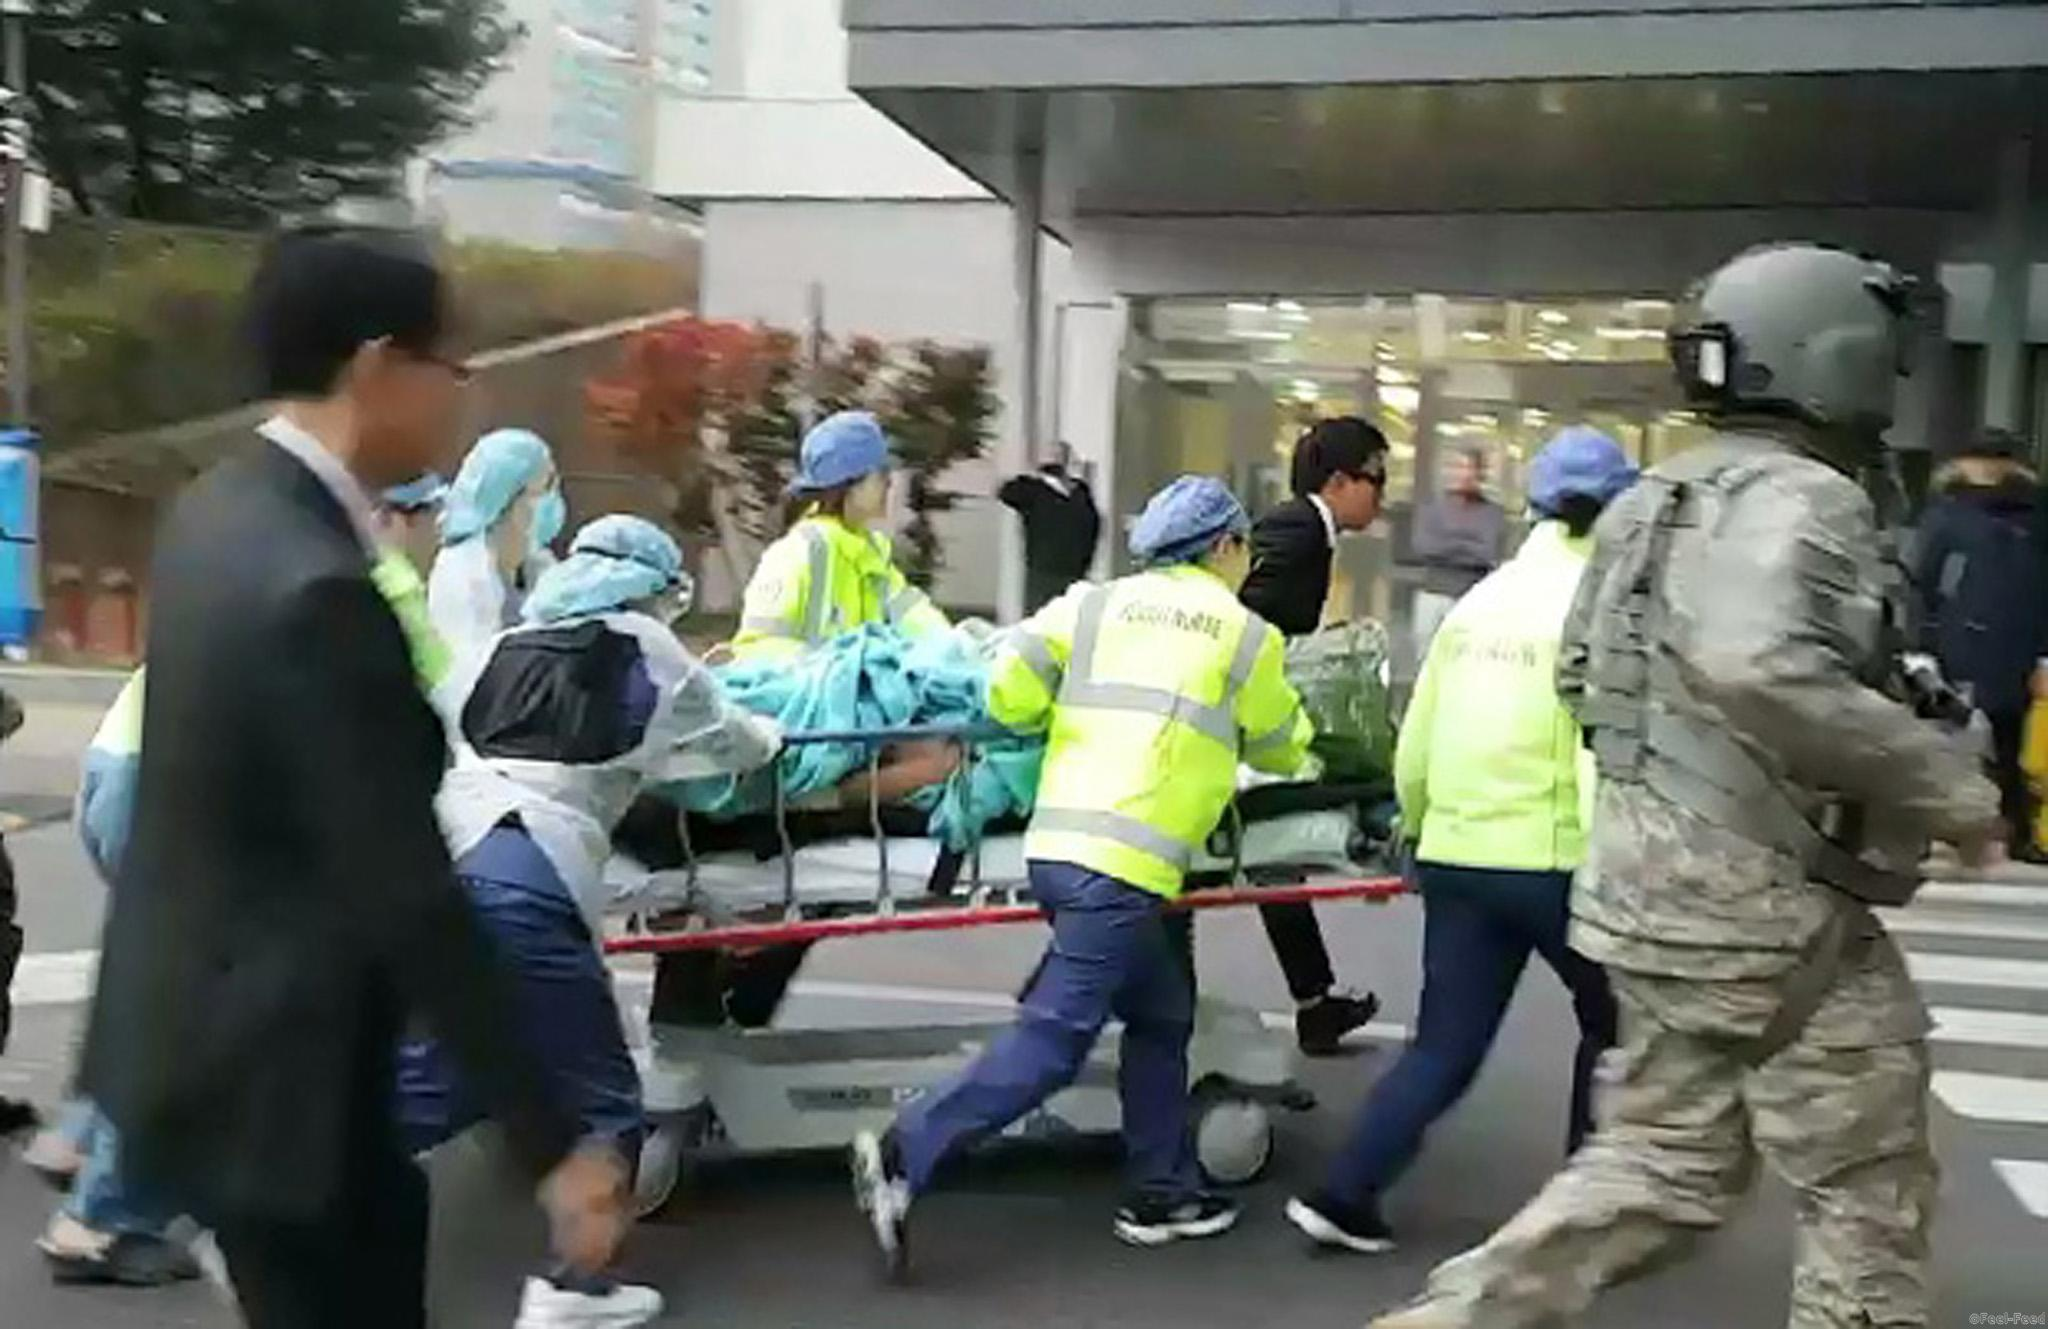 epaselect epa06327572 A North Korean soldier (C) is carried into a hospital in Suwon, Gyeonggi Province, South Korea, 13 November 2017 (issued 14 November 2017). According to reports, the soldier received gunshot wounds to the shoulder and elbow from North Korean forces while defecting to South Korea through the Joint Security Area (JSA) in the Demilitarized Zone. He was airlifted by a United Nations Command helicopter to the hospital. EPA-EFE/YONHAP SOUTH KOREA OUT --BEST QUALITY AVAILABLE--